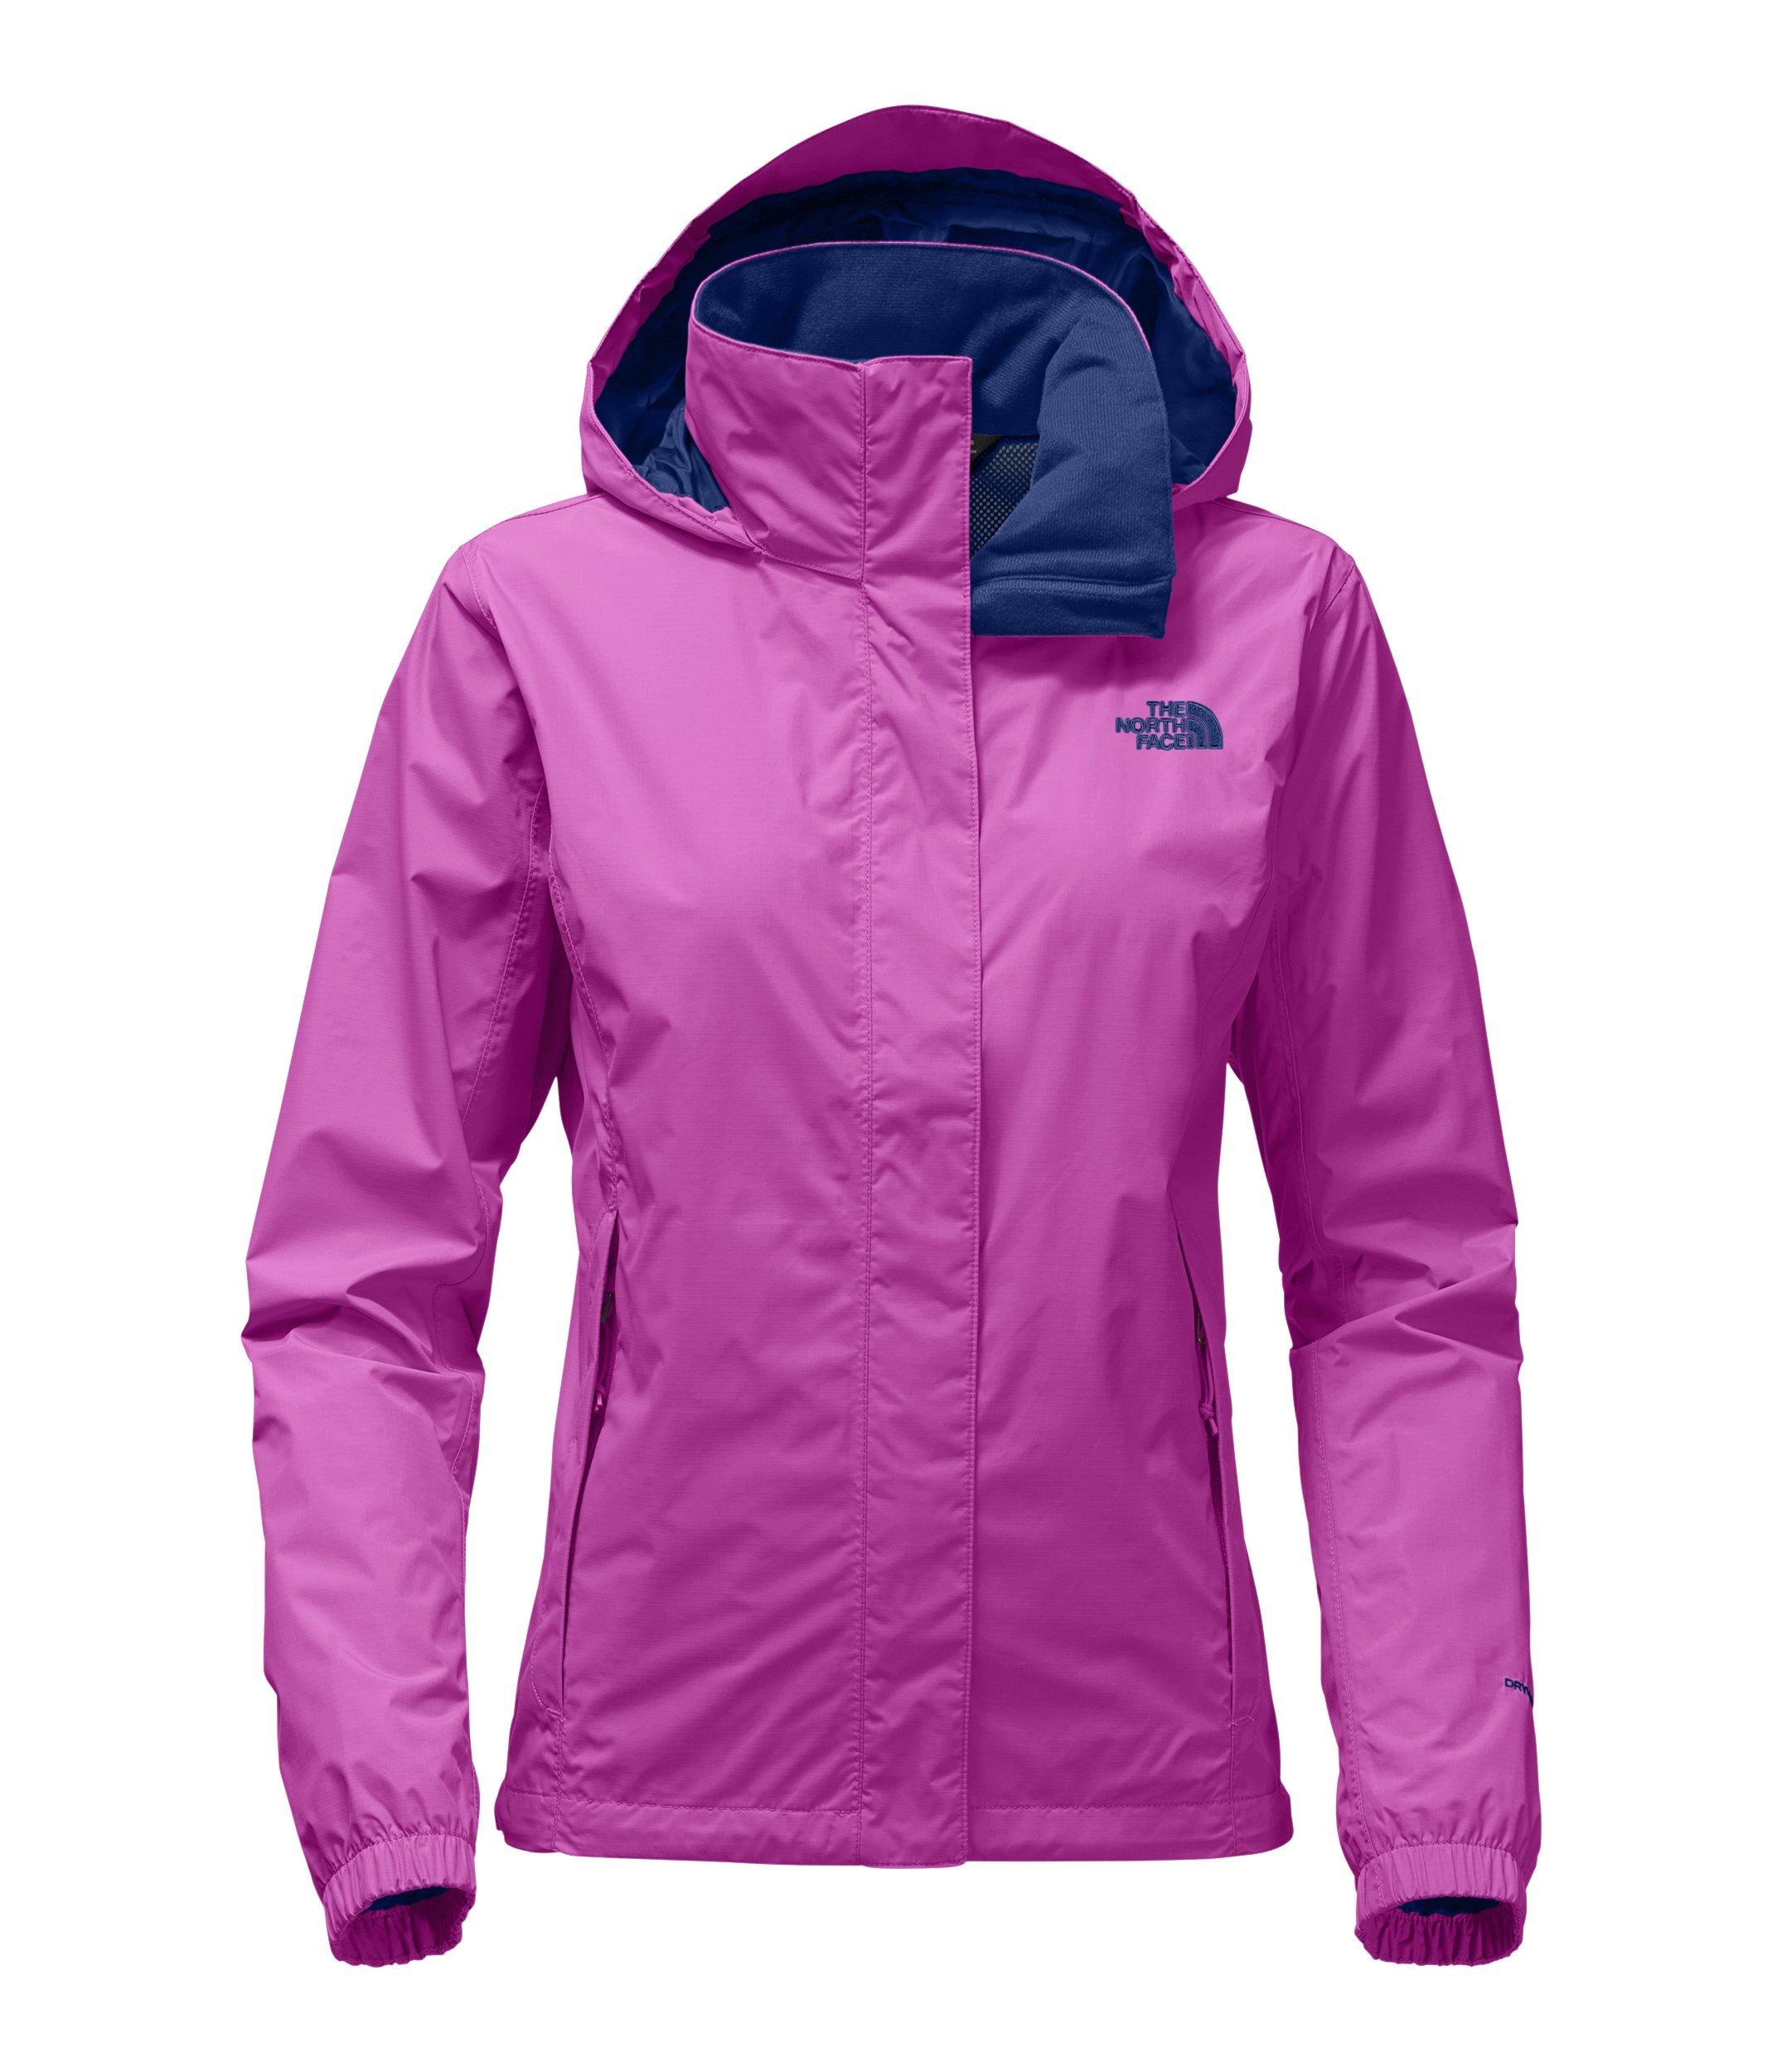 The North Face Womens Resolve 2 Jacket Violet Pink - XL